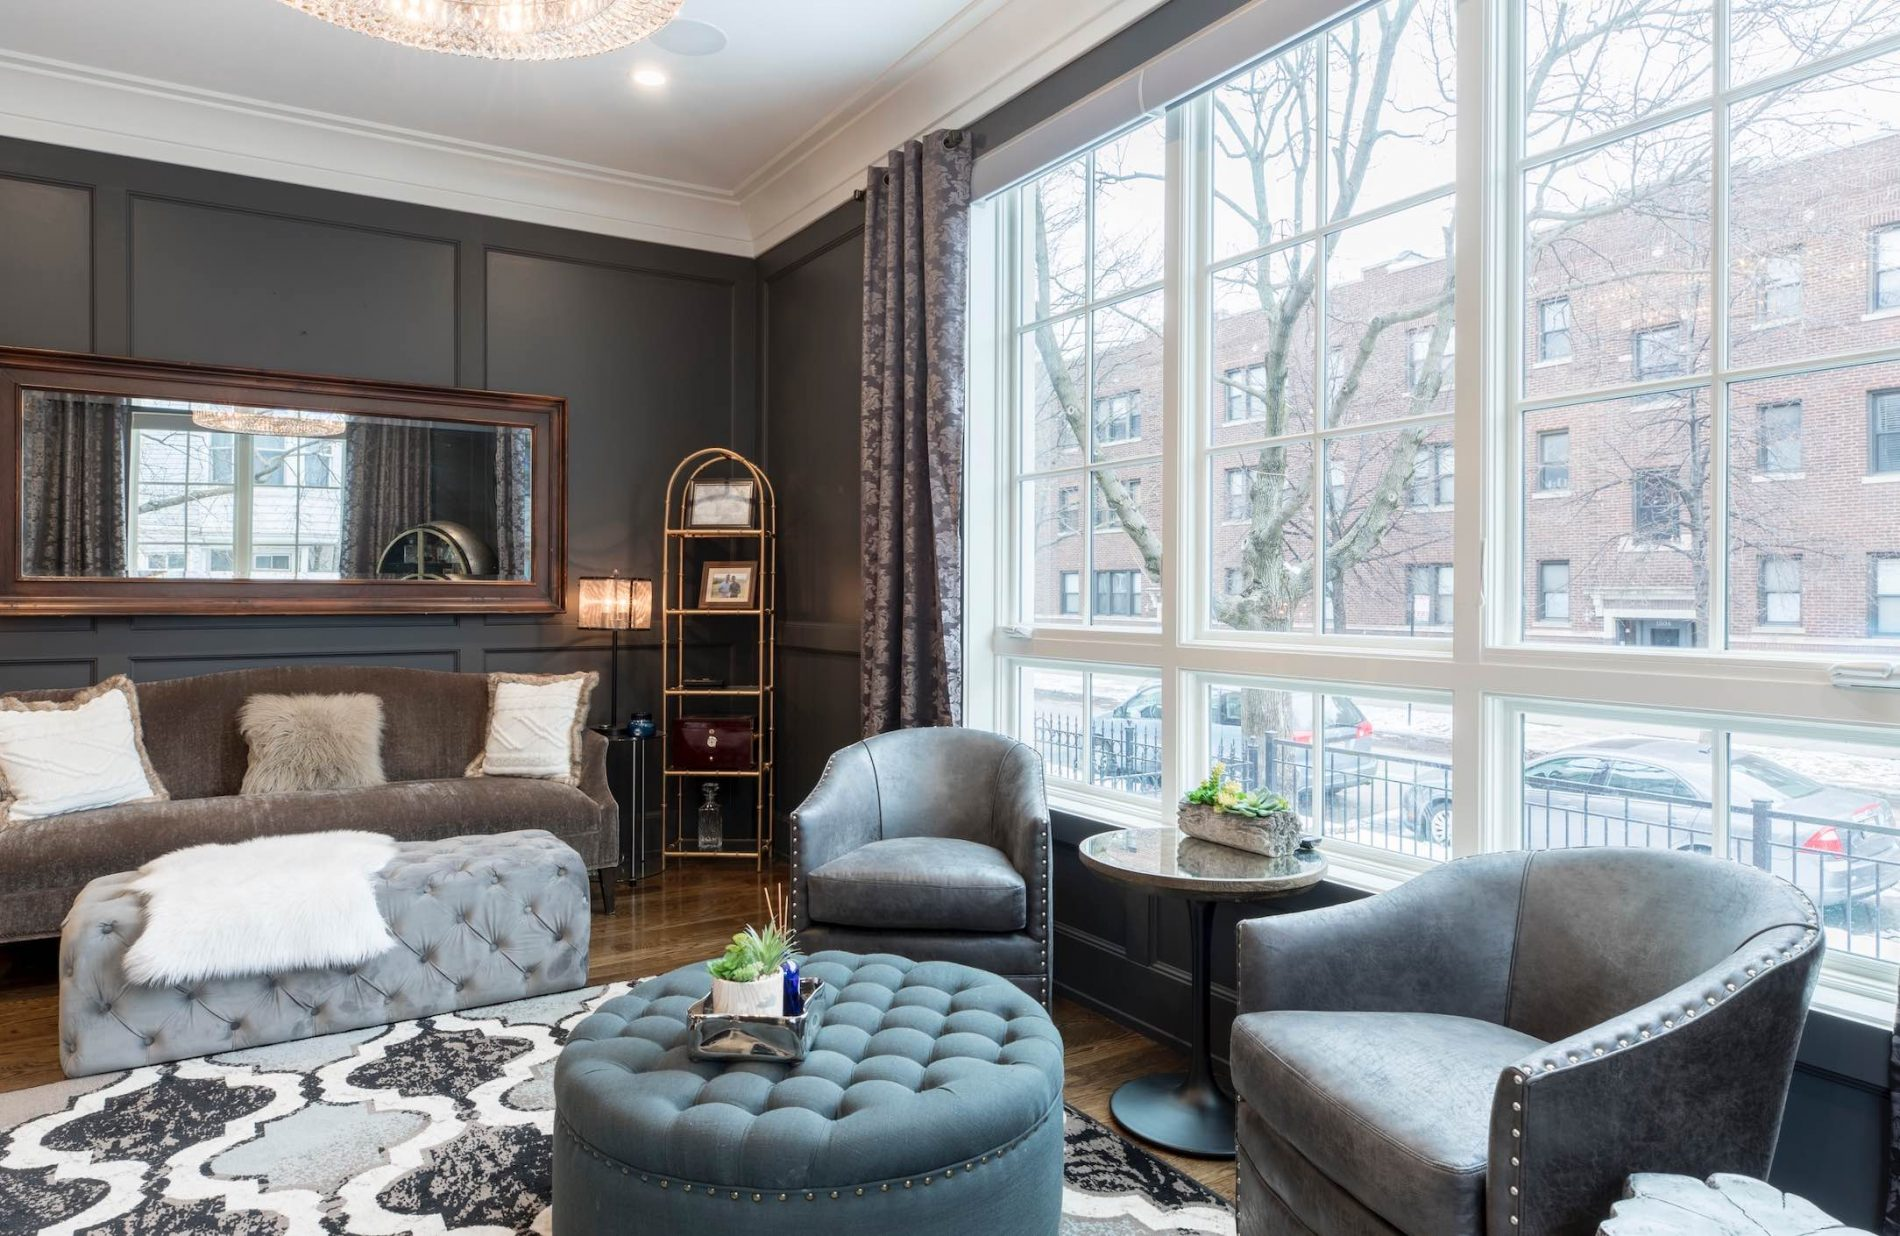 Glare Reducing Window Film Really Improves Comfort in Fall and Winter - Home and Commercial Window Film Services in the Buffalo, New York area